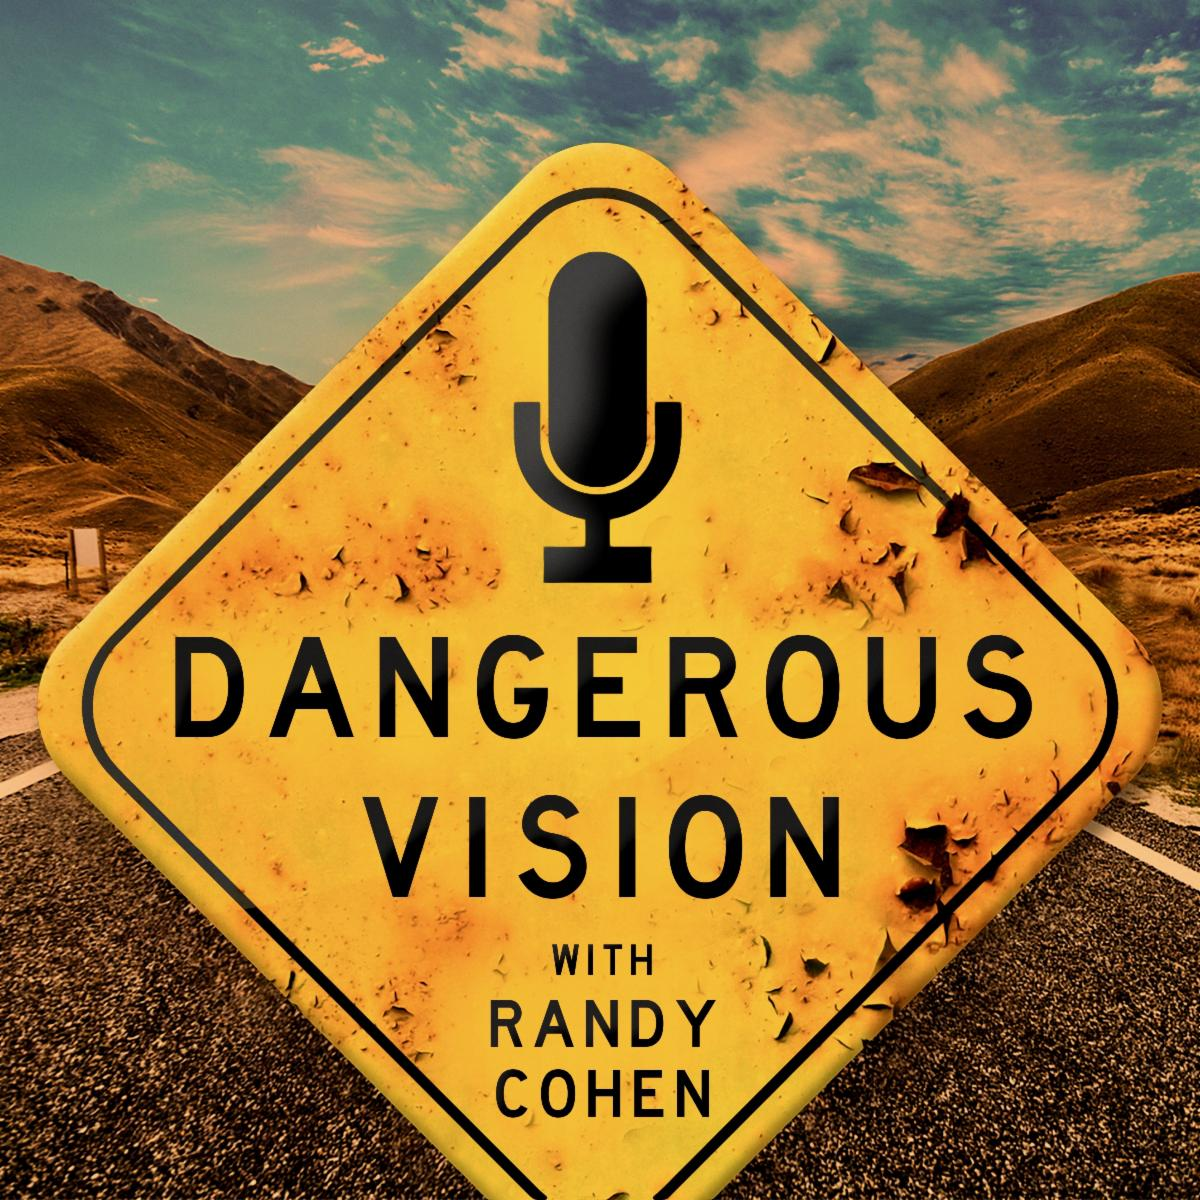 Dangerous Vision logo Yellow road sign with a microphone image Text: Dangerous Vision with Randy Cohen